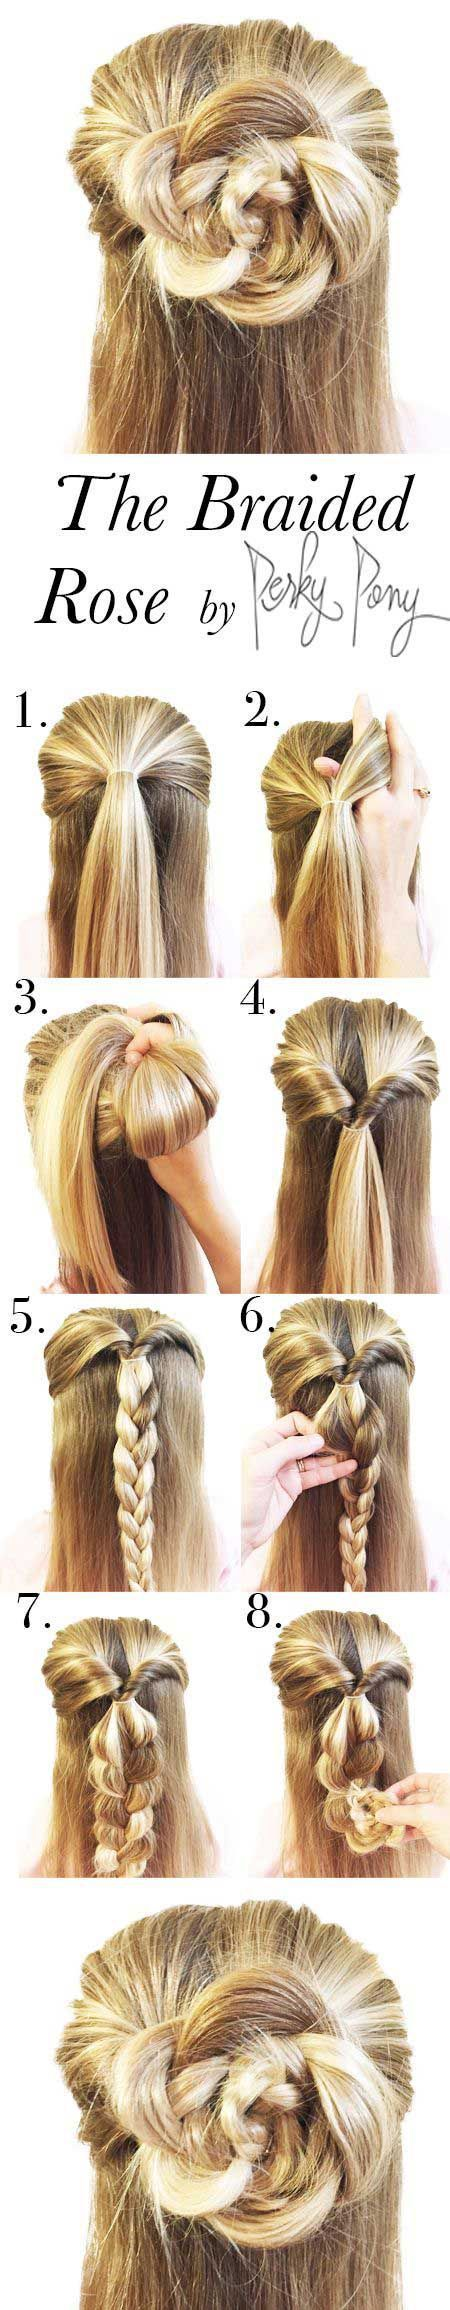 Easy half up half down hairstyles the braided rose work